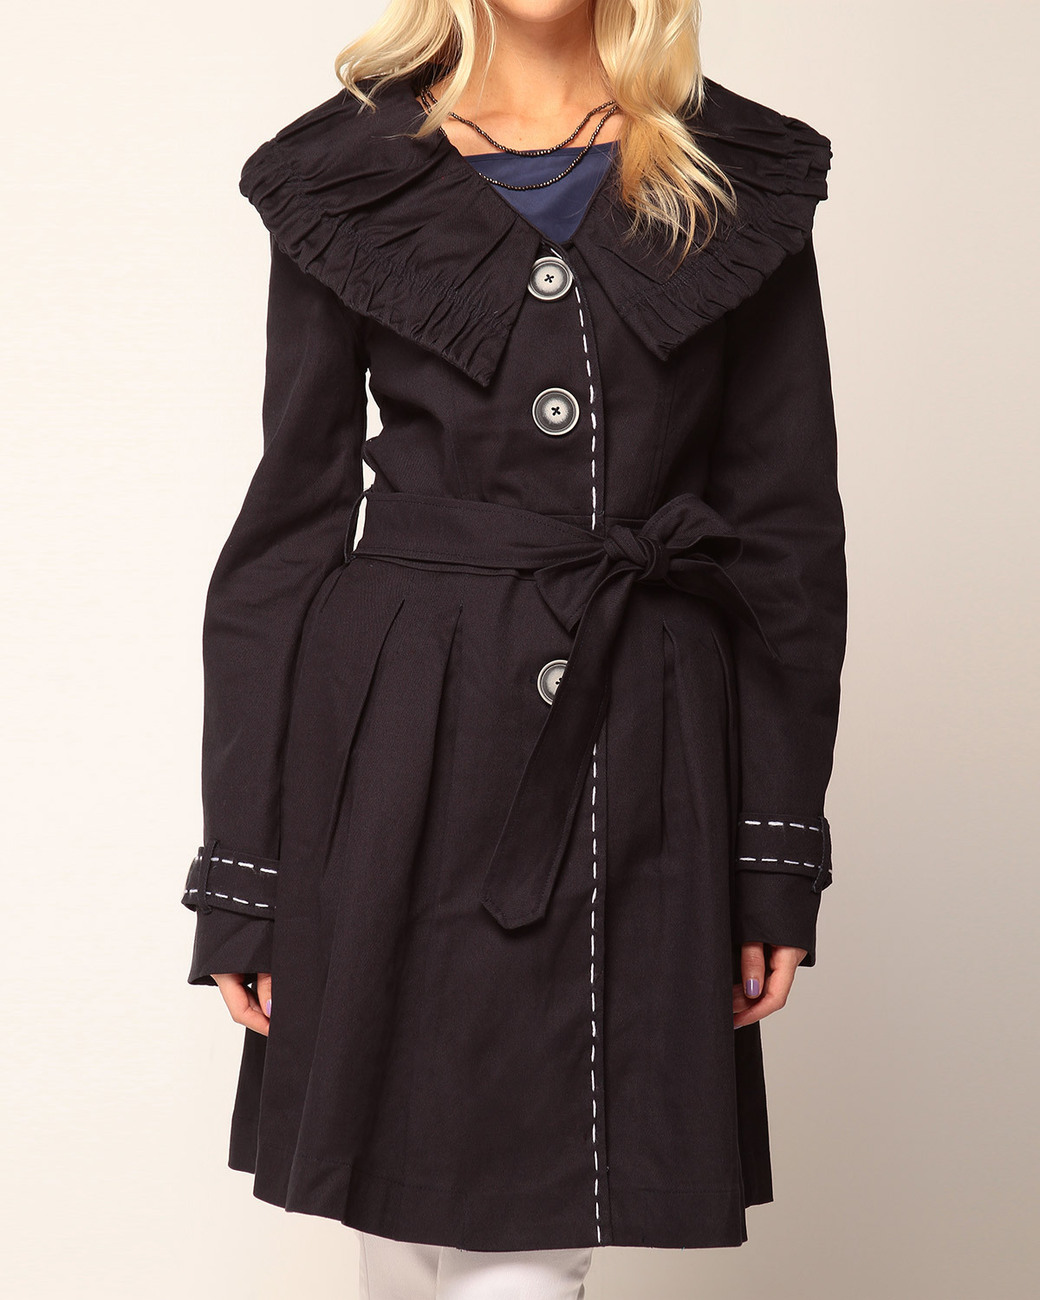 Nick & Mo Pleated Trench Coat  Small  NWT